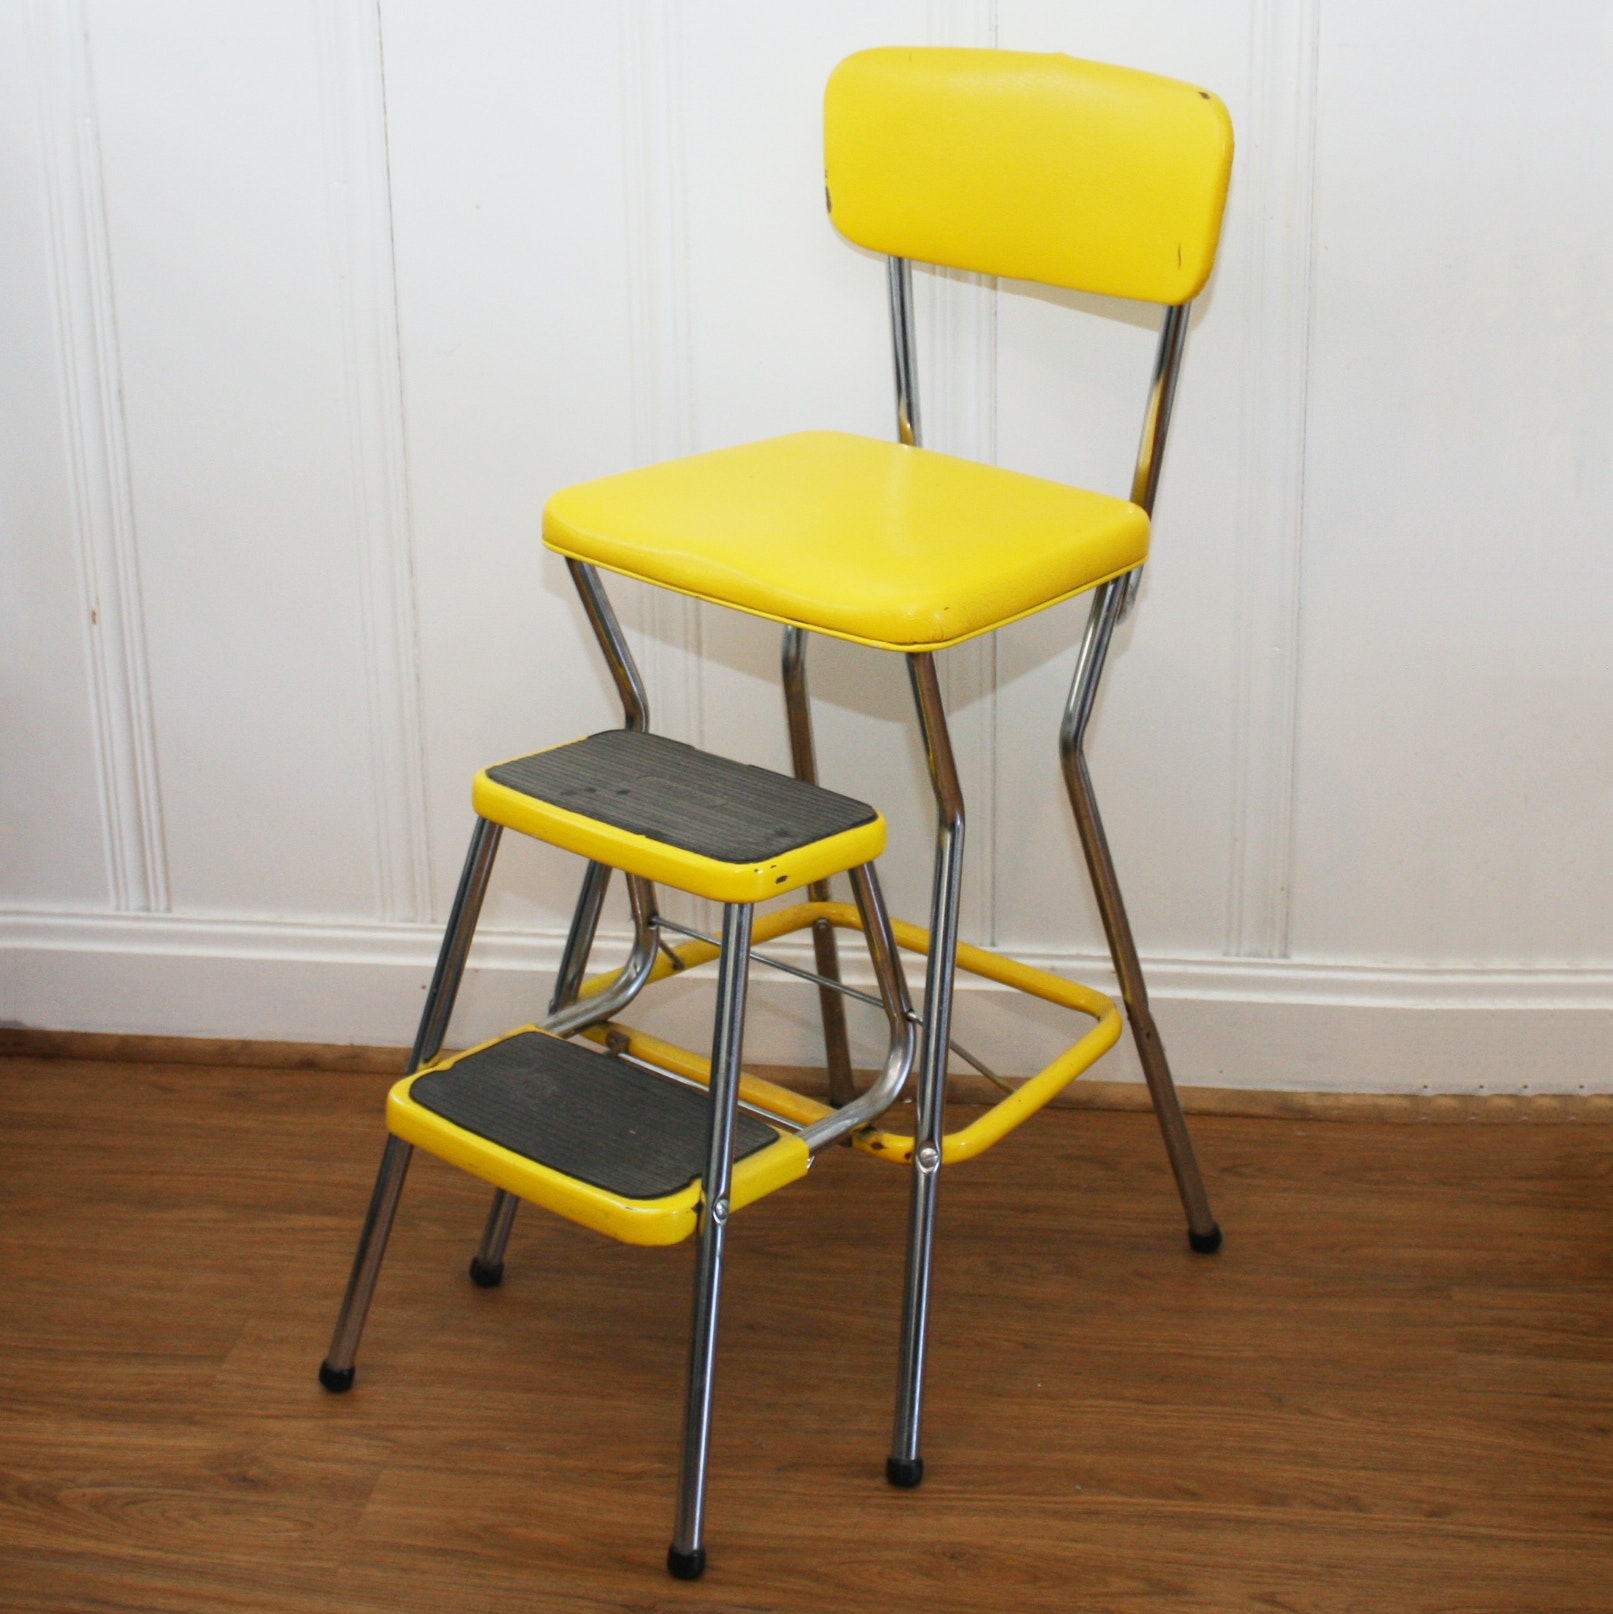 Vintage Chair Step Stool by Cosco